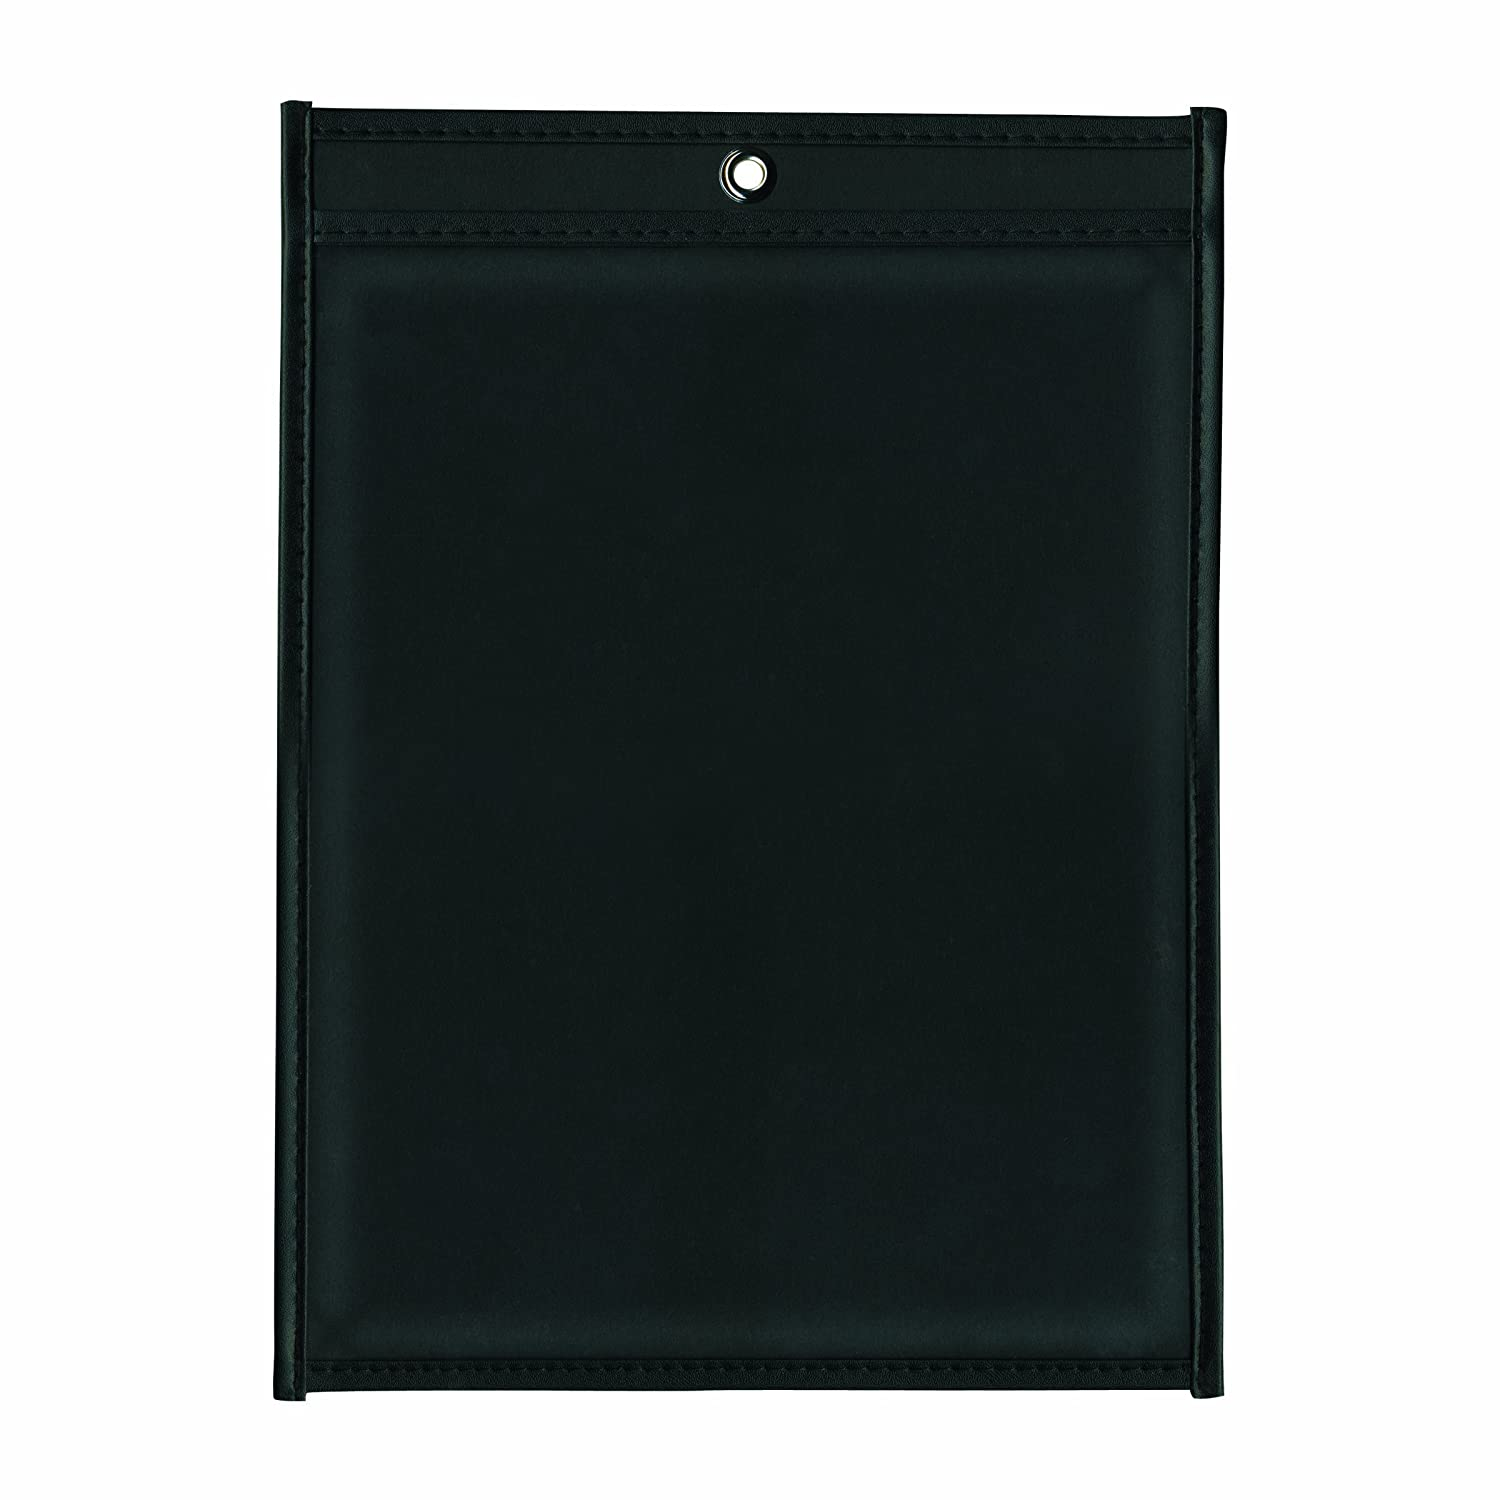 25-Count ADVANTUS Job Ticket Holders ANG1570 8.5 x 11 Inches Clear Cover Black Back